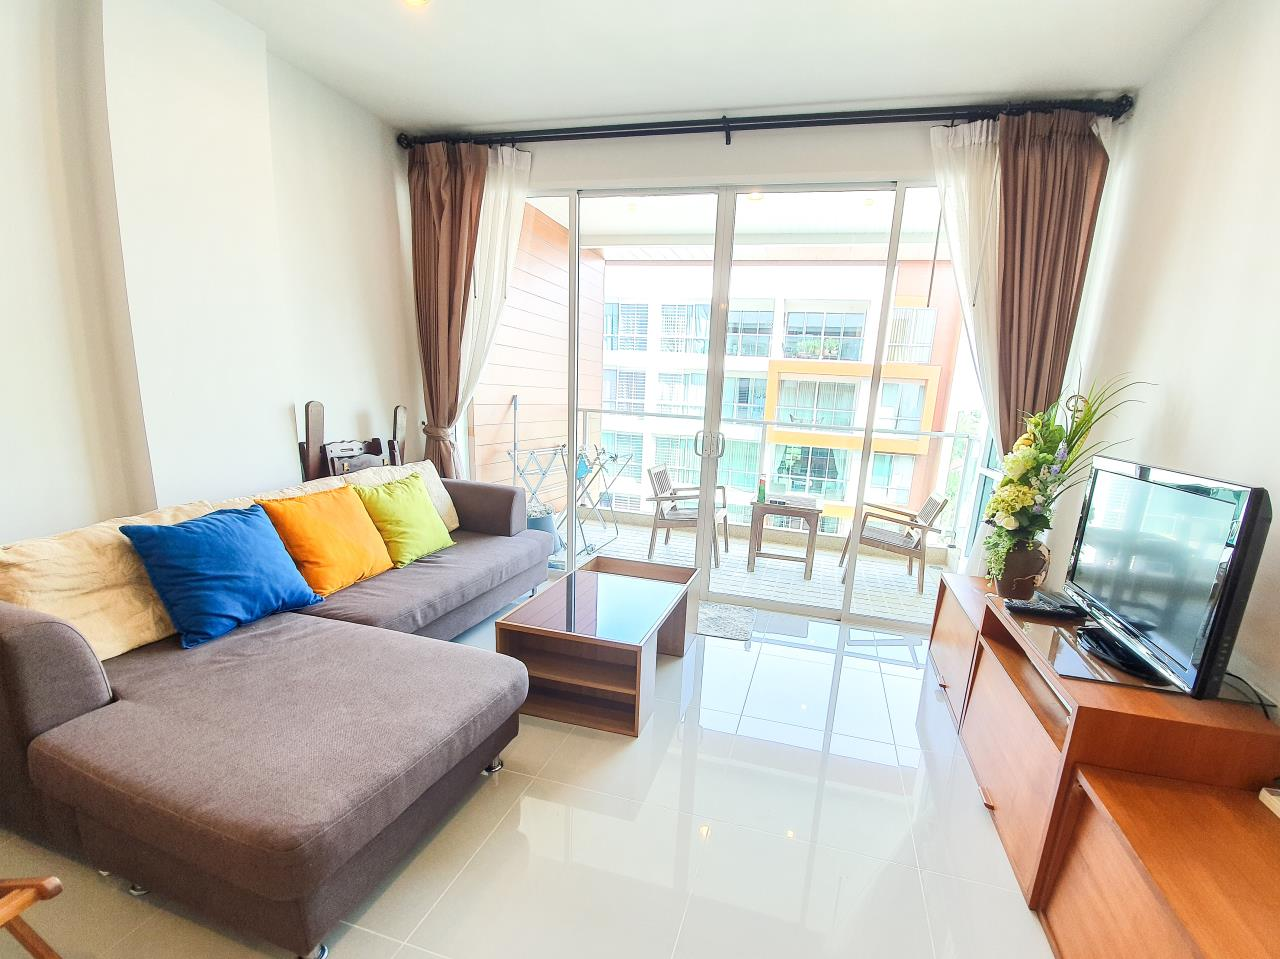 HOME - Real Estate Service Agency's The Breeze Hua Hin / 2 Beds (FOR RENT), เดอะ บรีซ หัวหิน / 2 ห้องนอน (ให้เช่า) T008 27